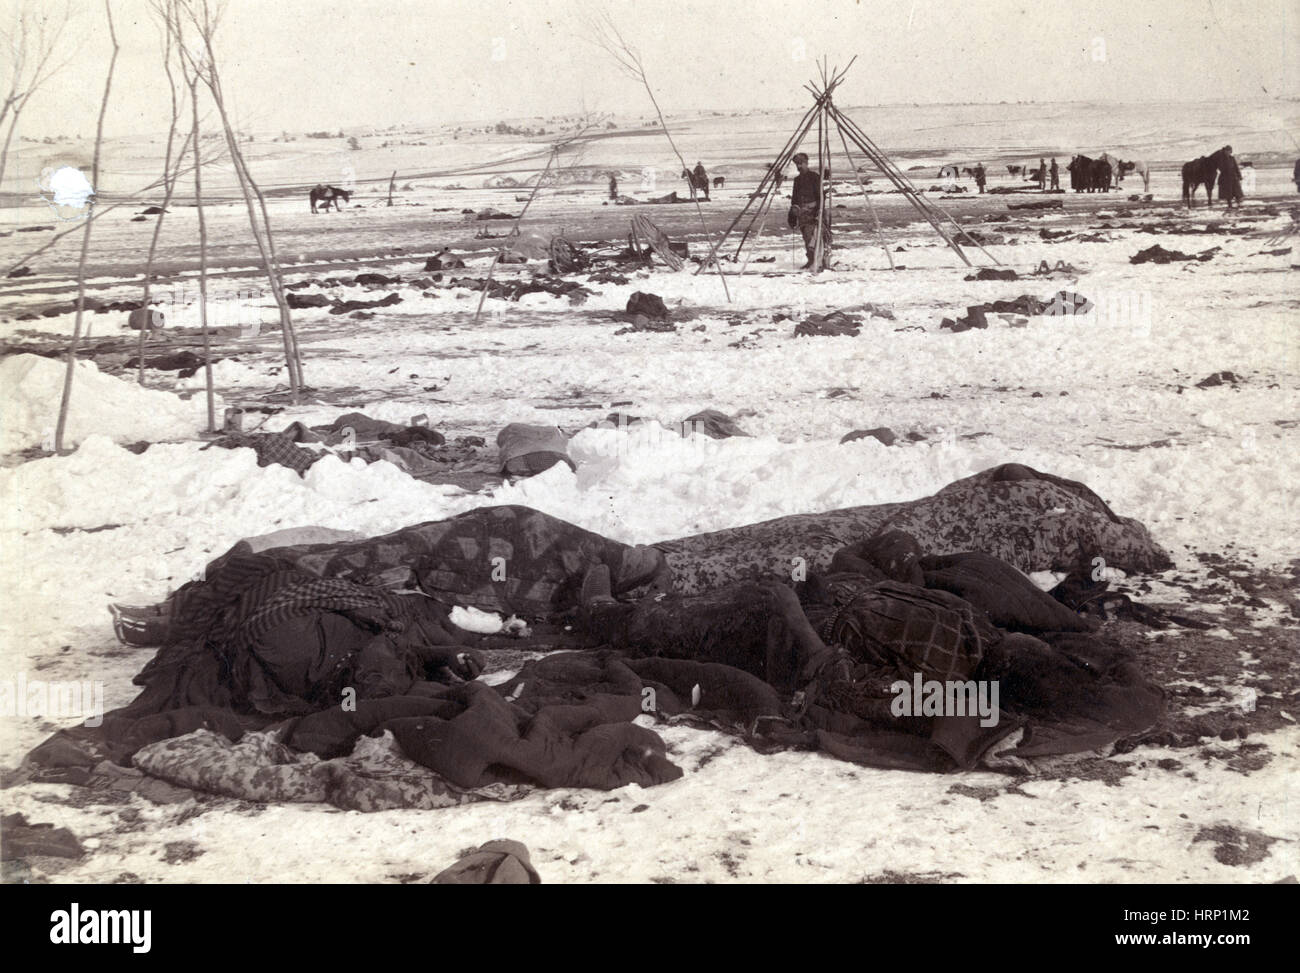 Spotted Elk's Camp, Wounded Knee Massacre, 1891 - Stock Image